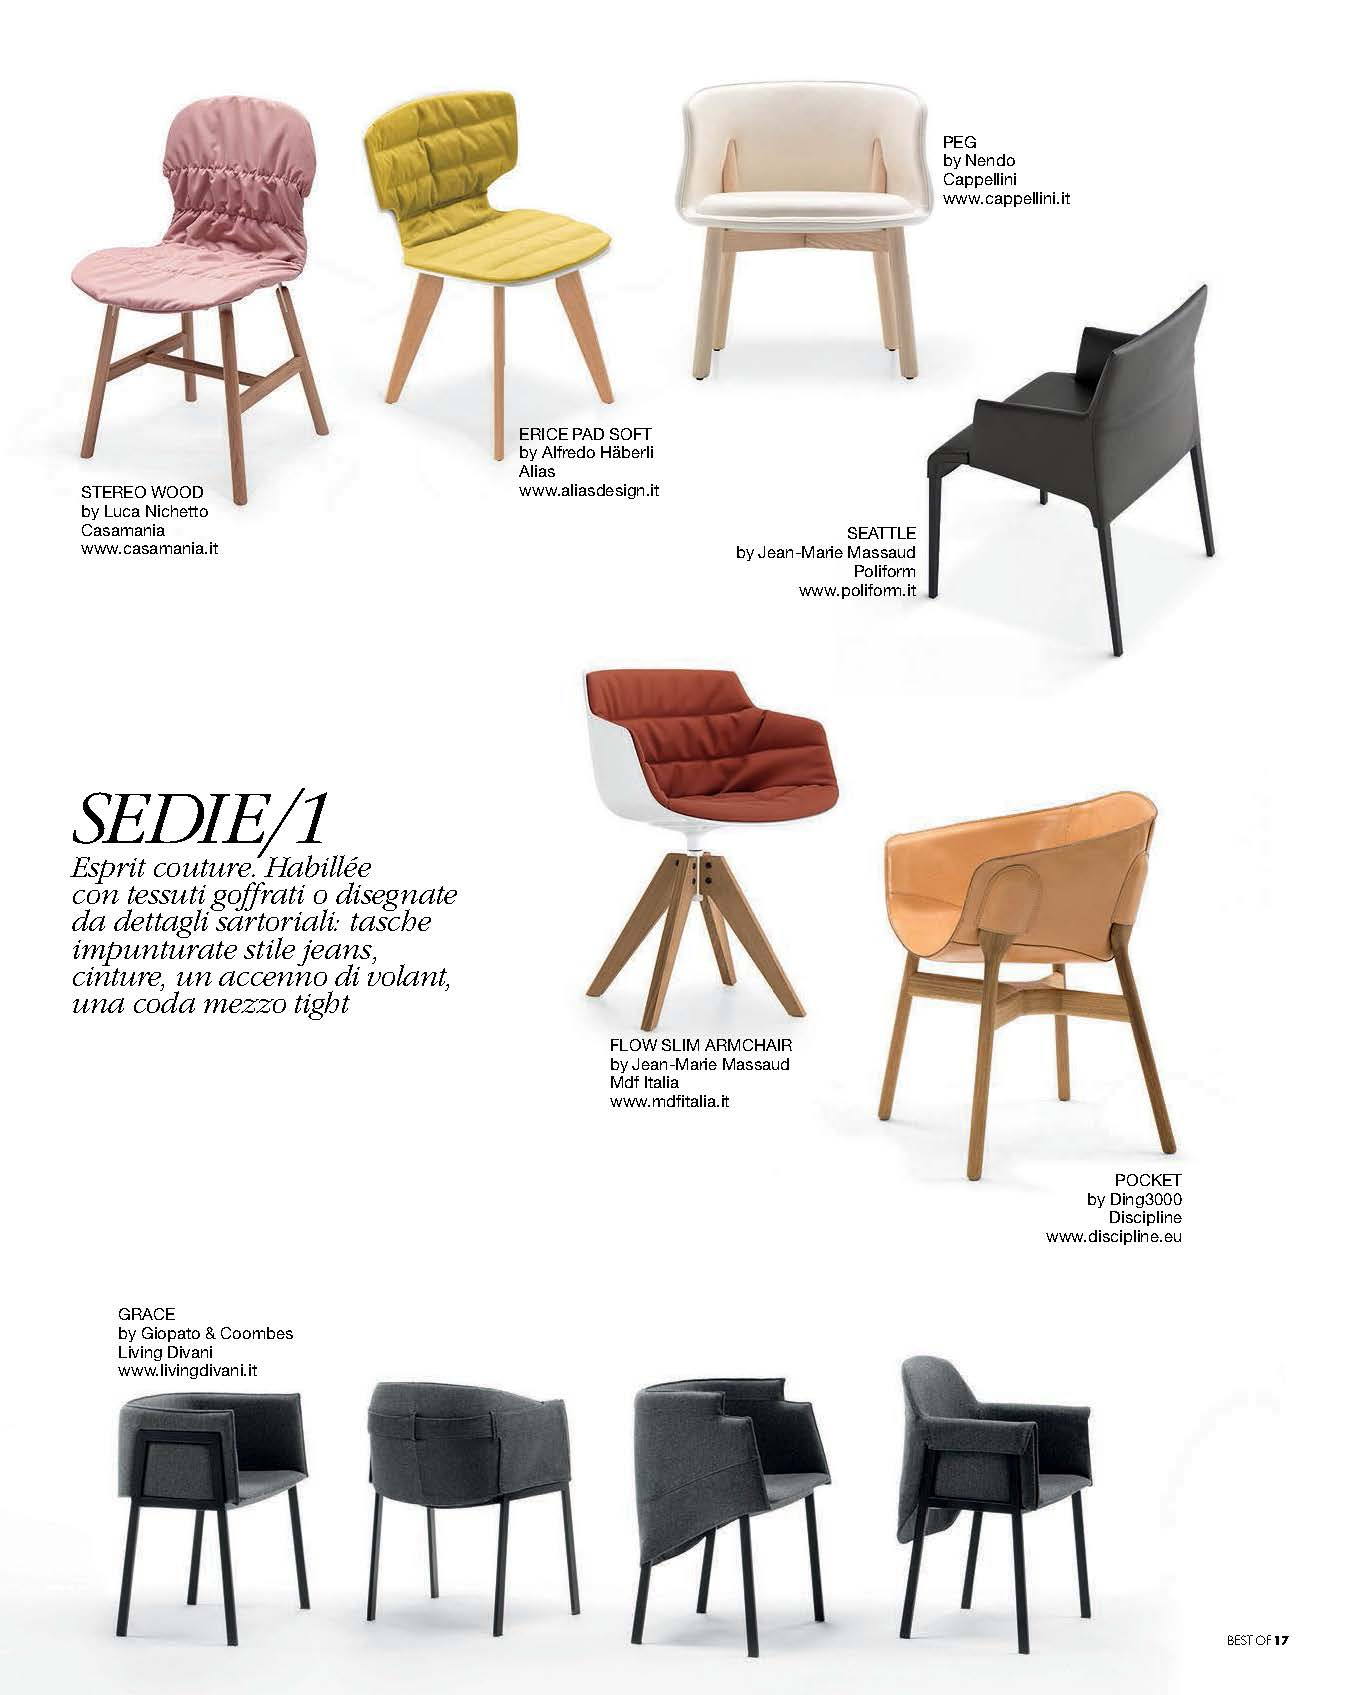 Elle_Decor_09_2013_Page_2